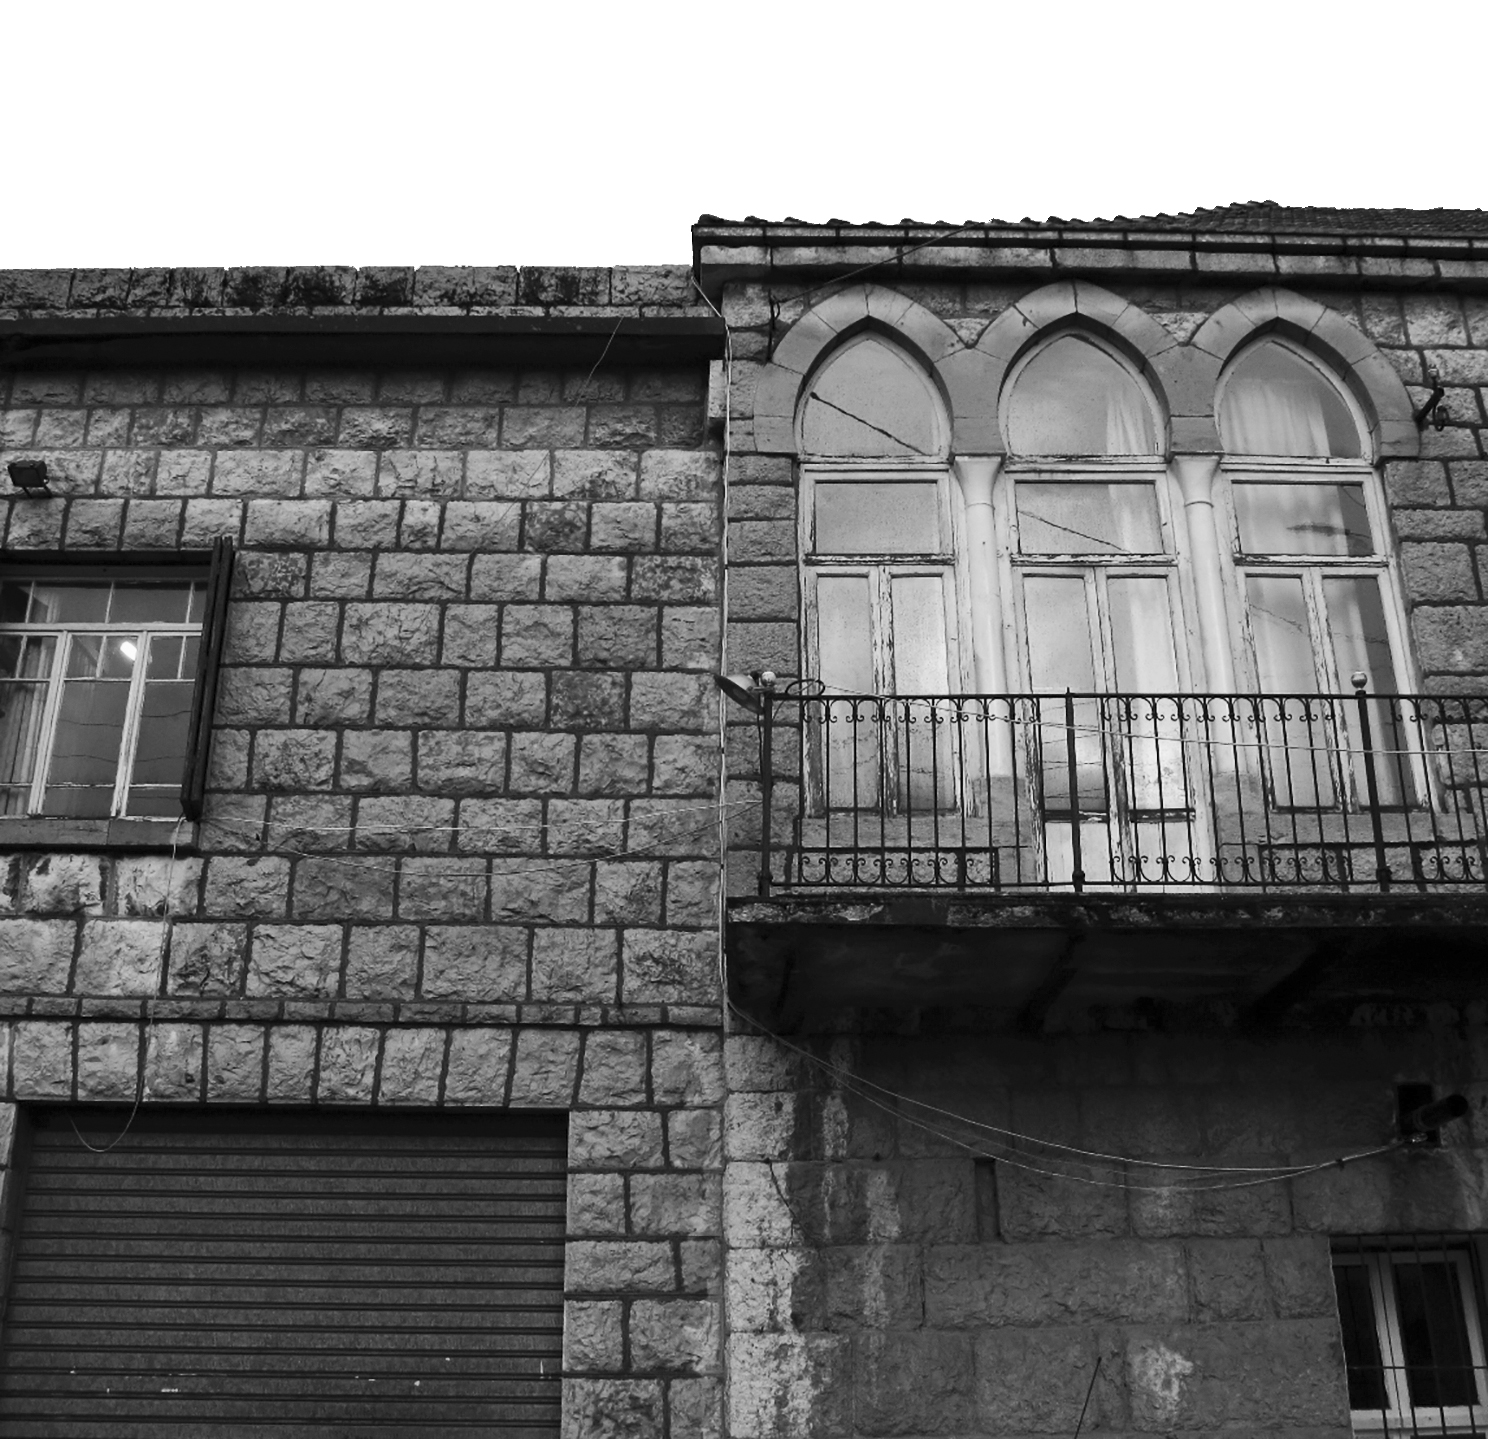 A House of many Faces, Dr.-Ing. Youssef El Khoury